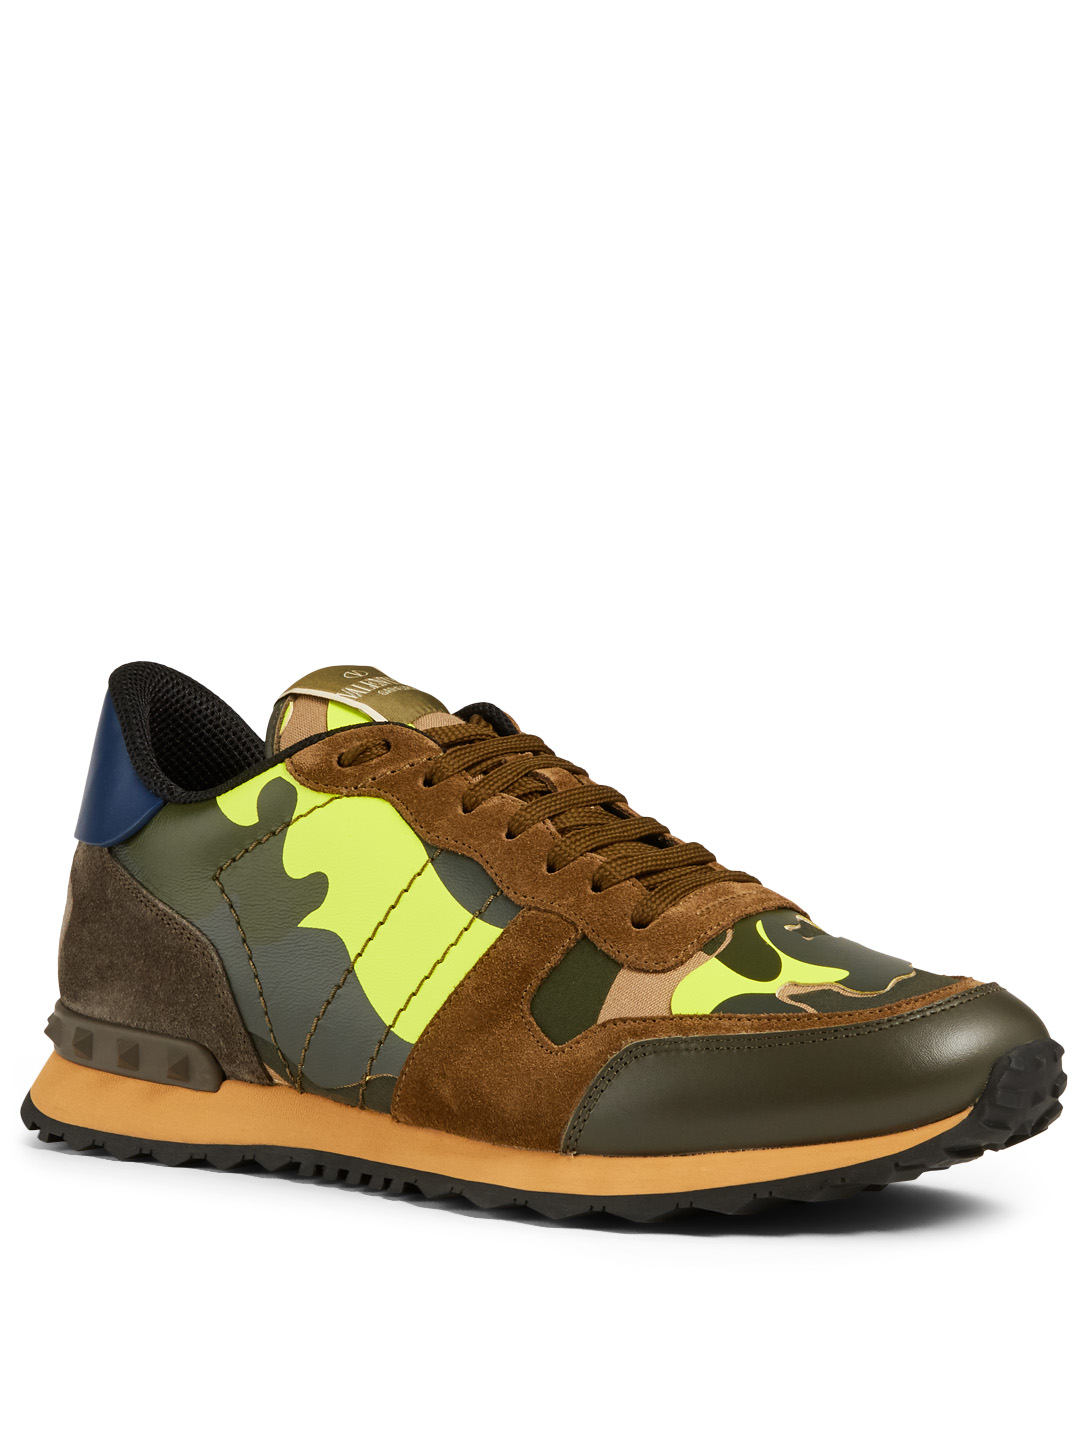 d13592d564503 ... VALENTINO GARAVANI Rockrunner Leather And Fabric Sneakers In Camouflage  Men's Green ...